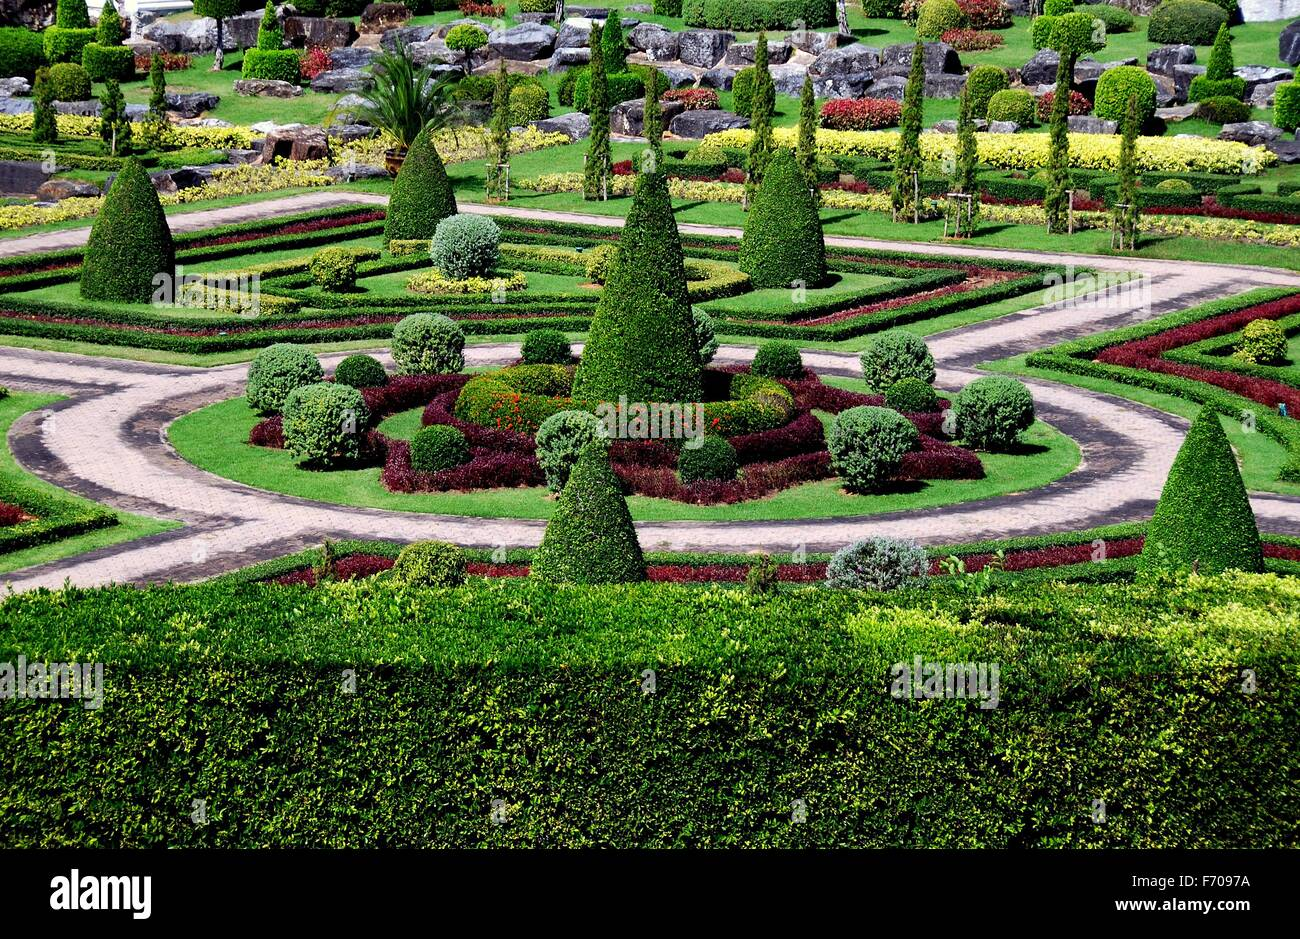 Pattaya Thailand Geometric patterns created from topiary